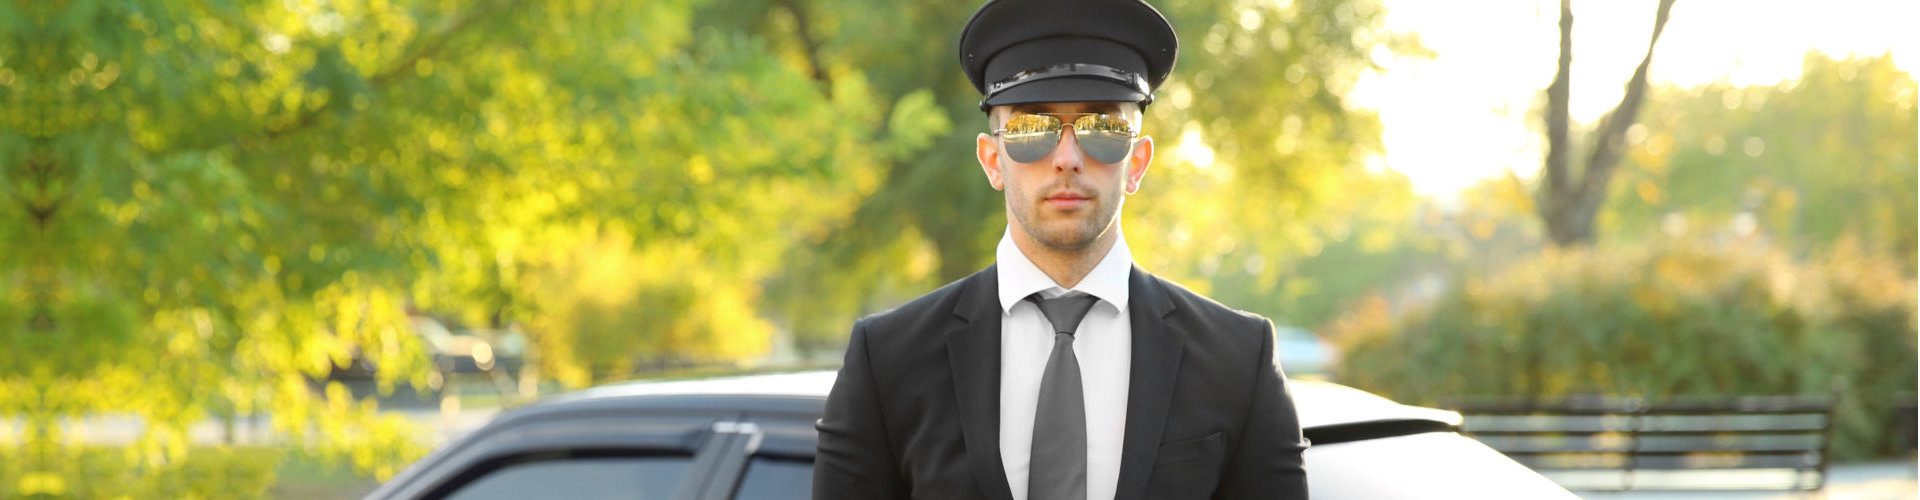 limousine driver standing